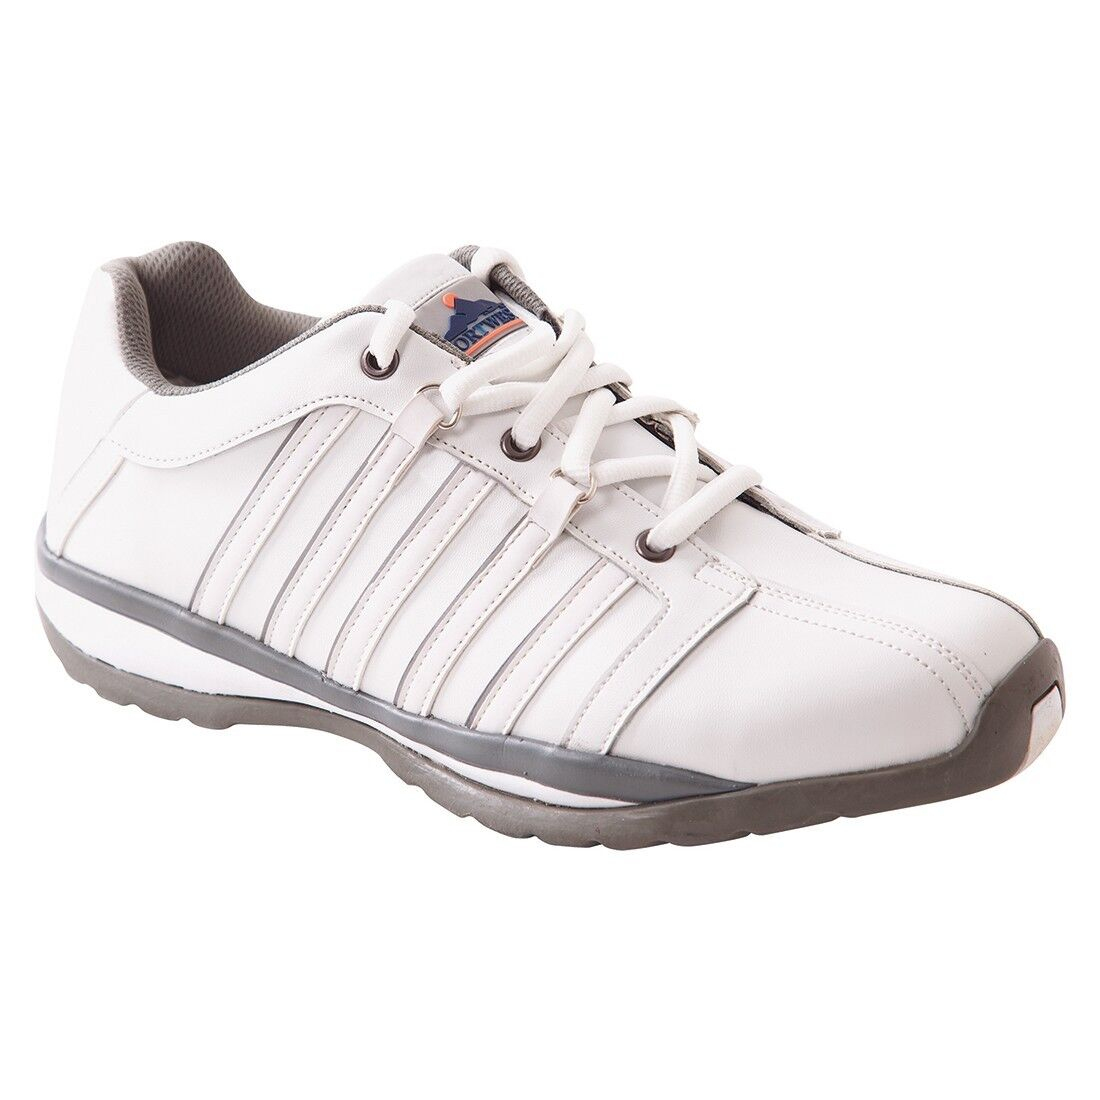 Portwest Arx Safety Trainer 48/13 S1P FW33 BNWT Free Delivery